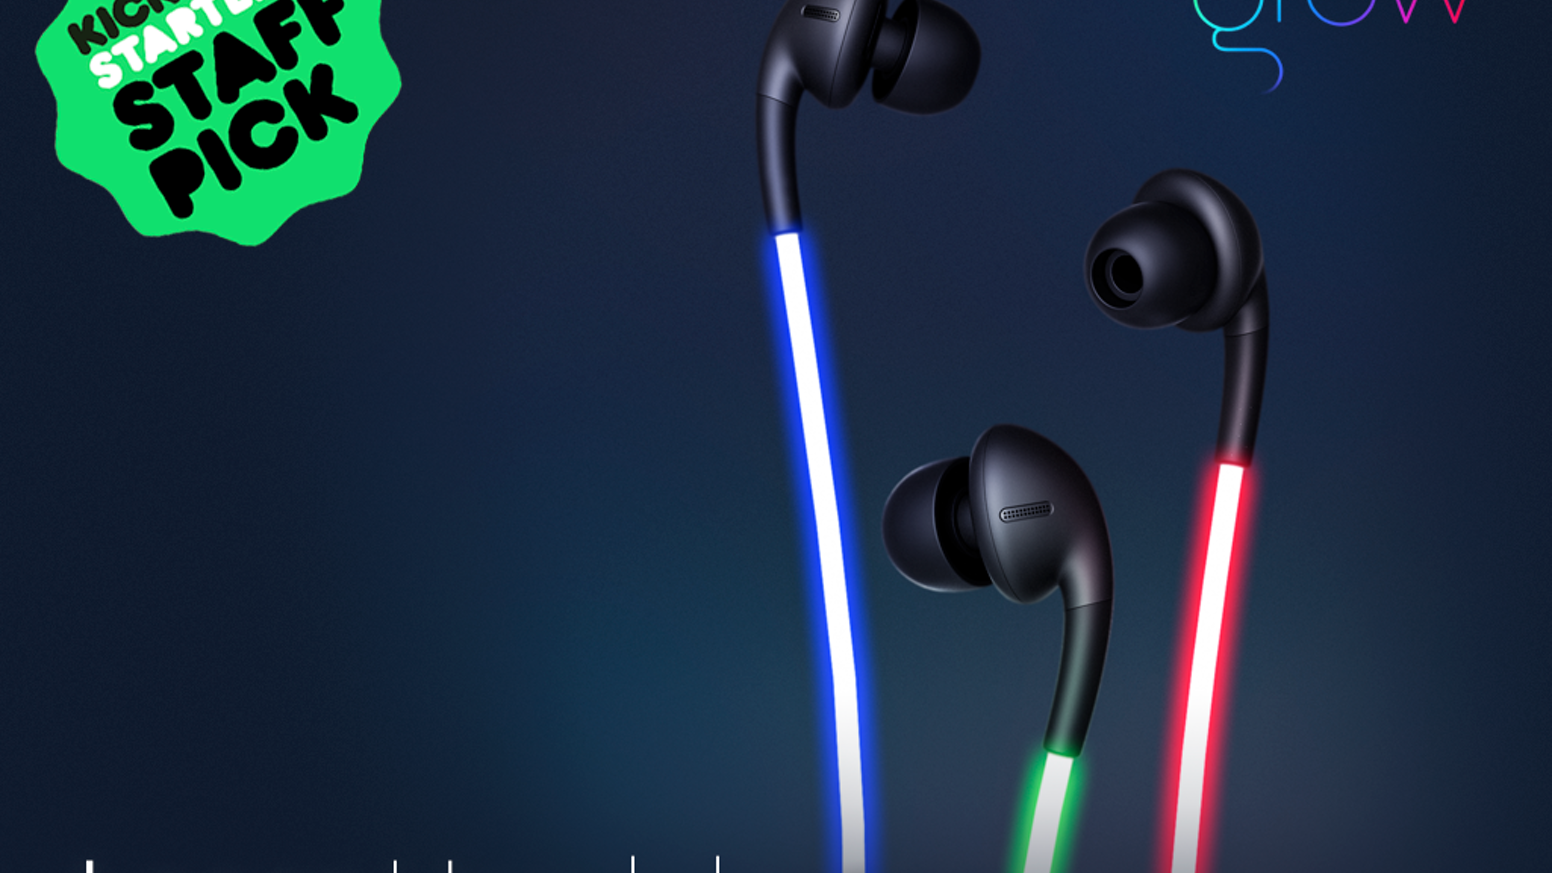 07bdbf6755b Using lasers, premium audio drivers, and smartphone integration, Glow is  the ultimate pairing